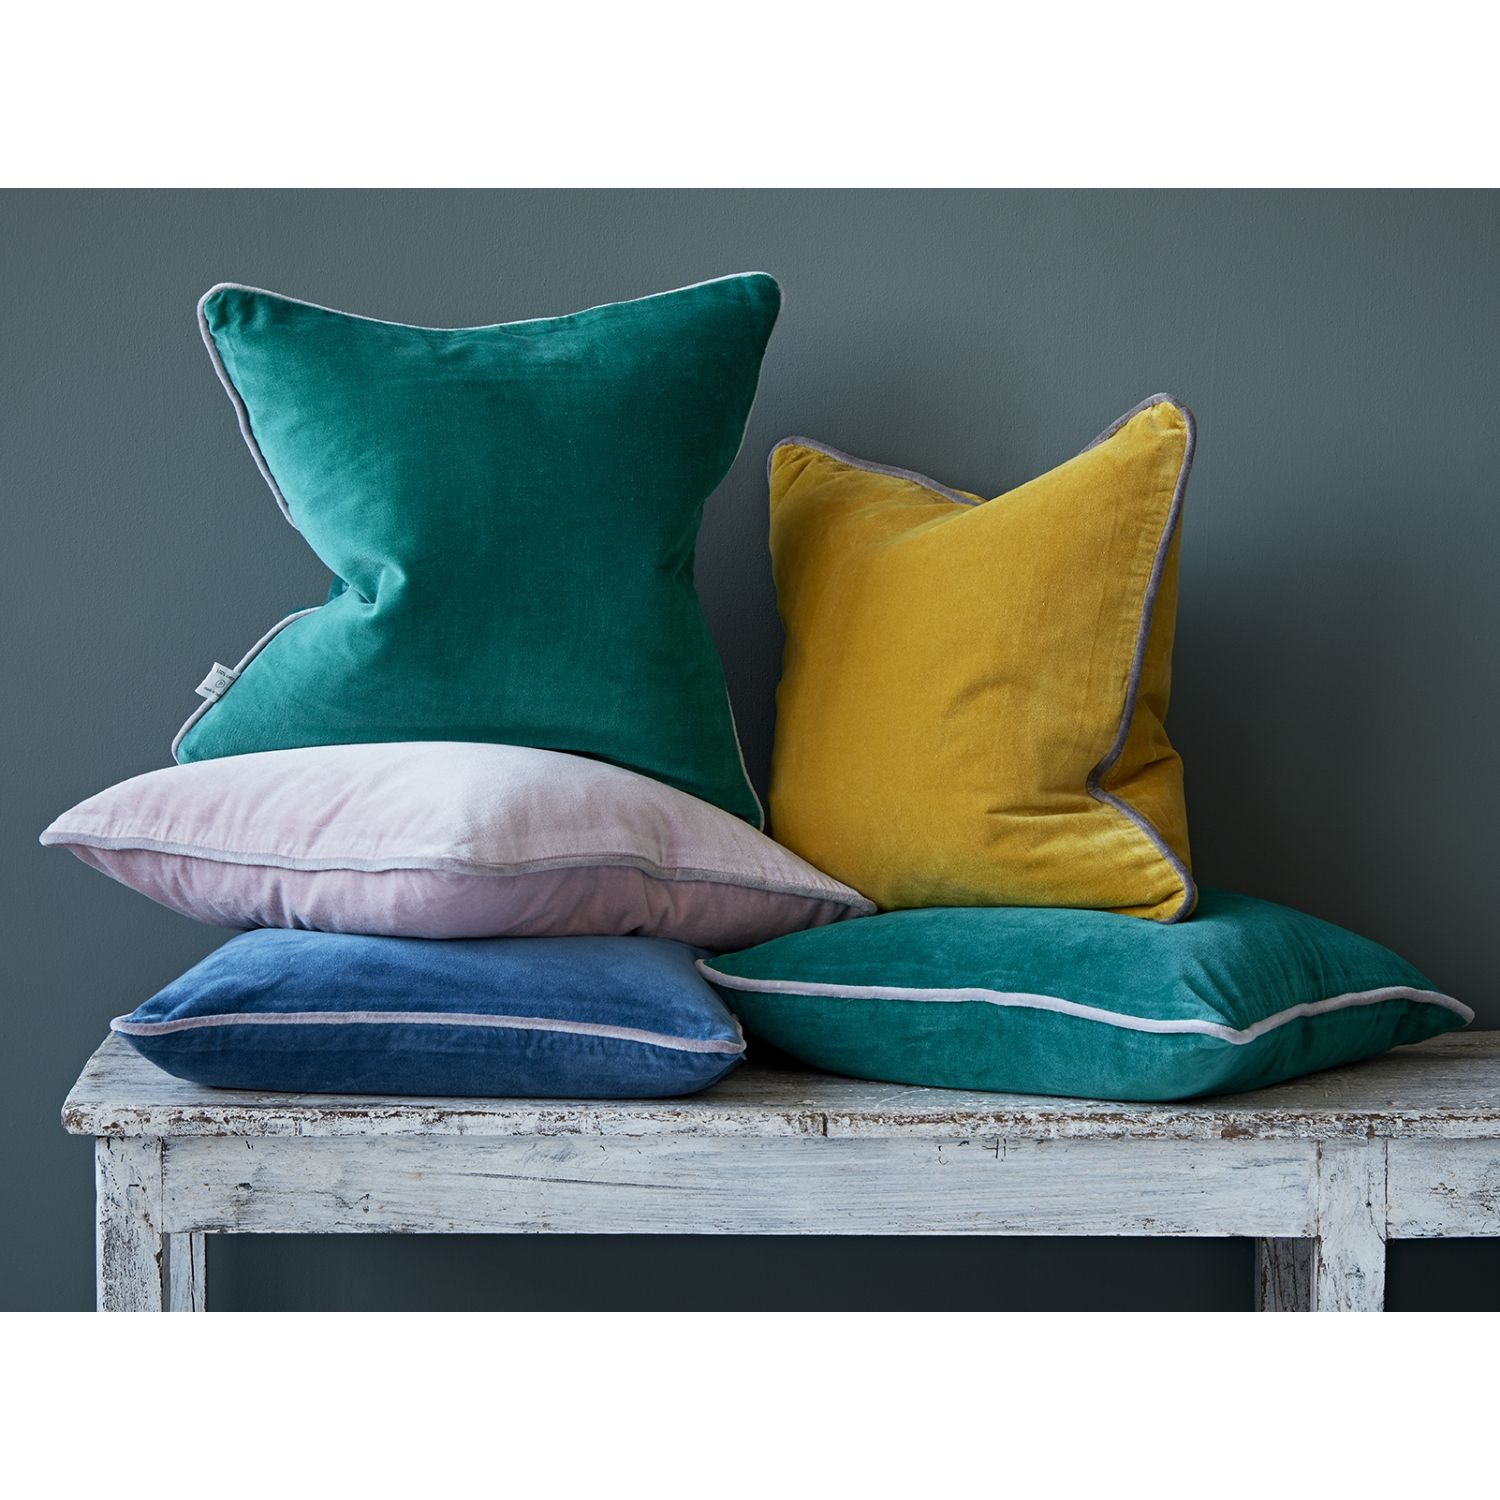 These lovely velvet cushions with contrast piping